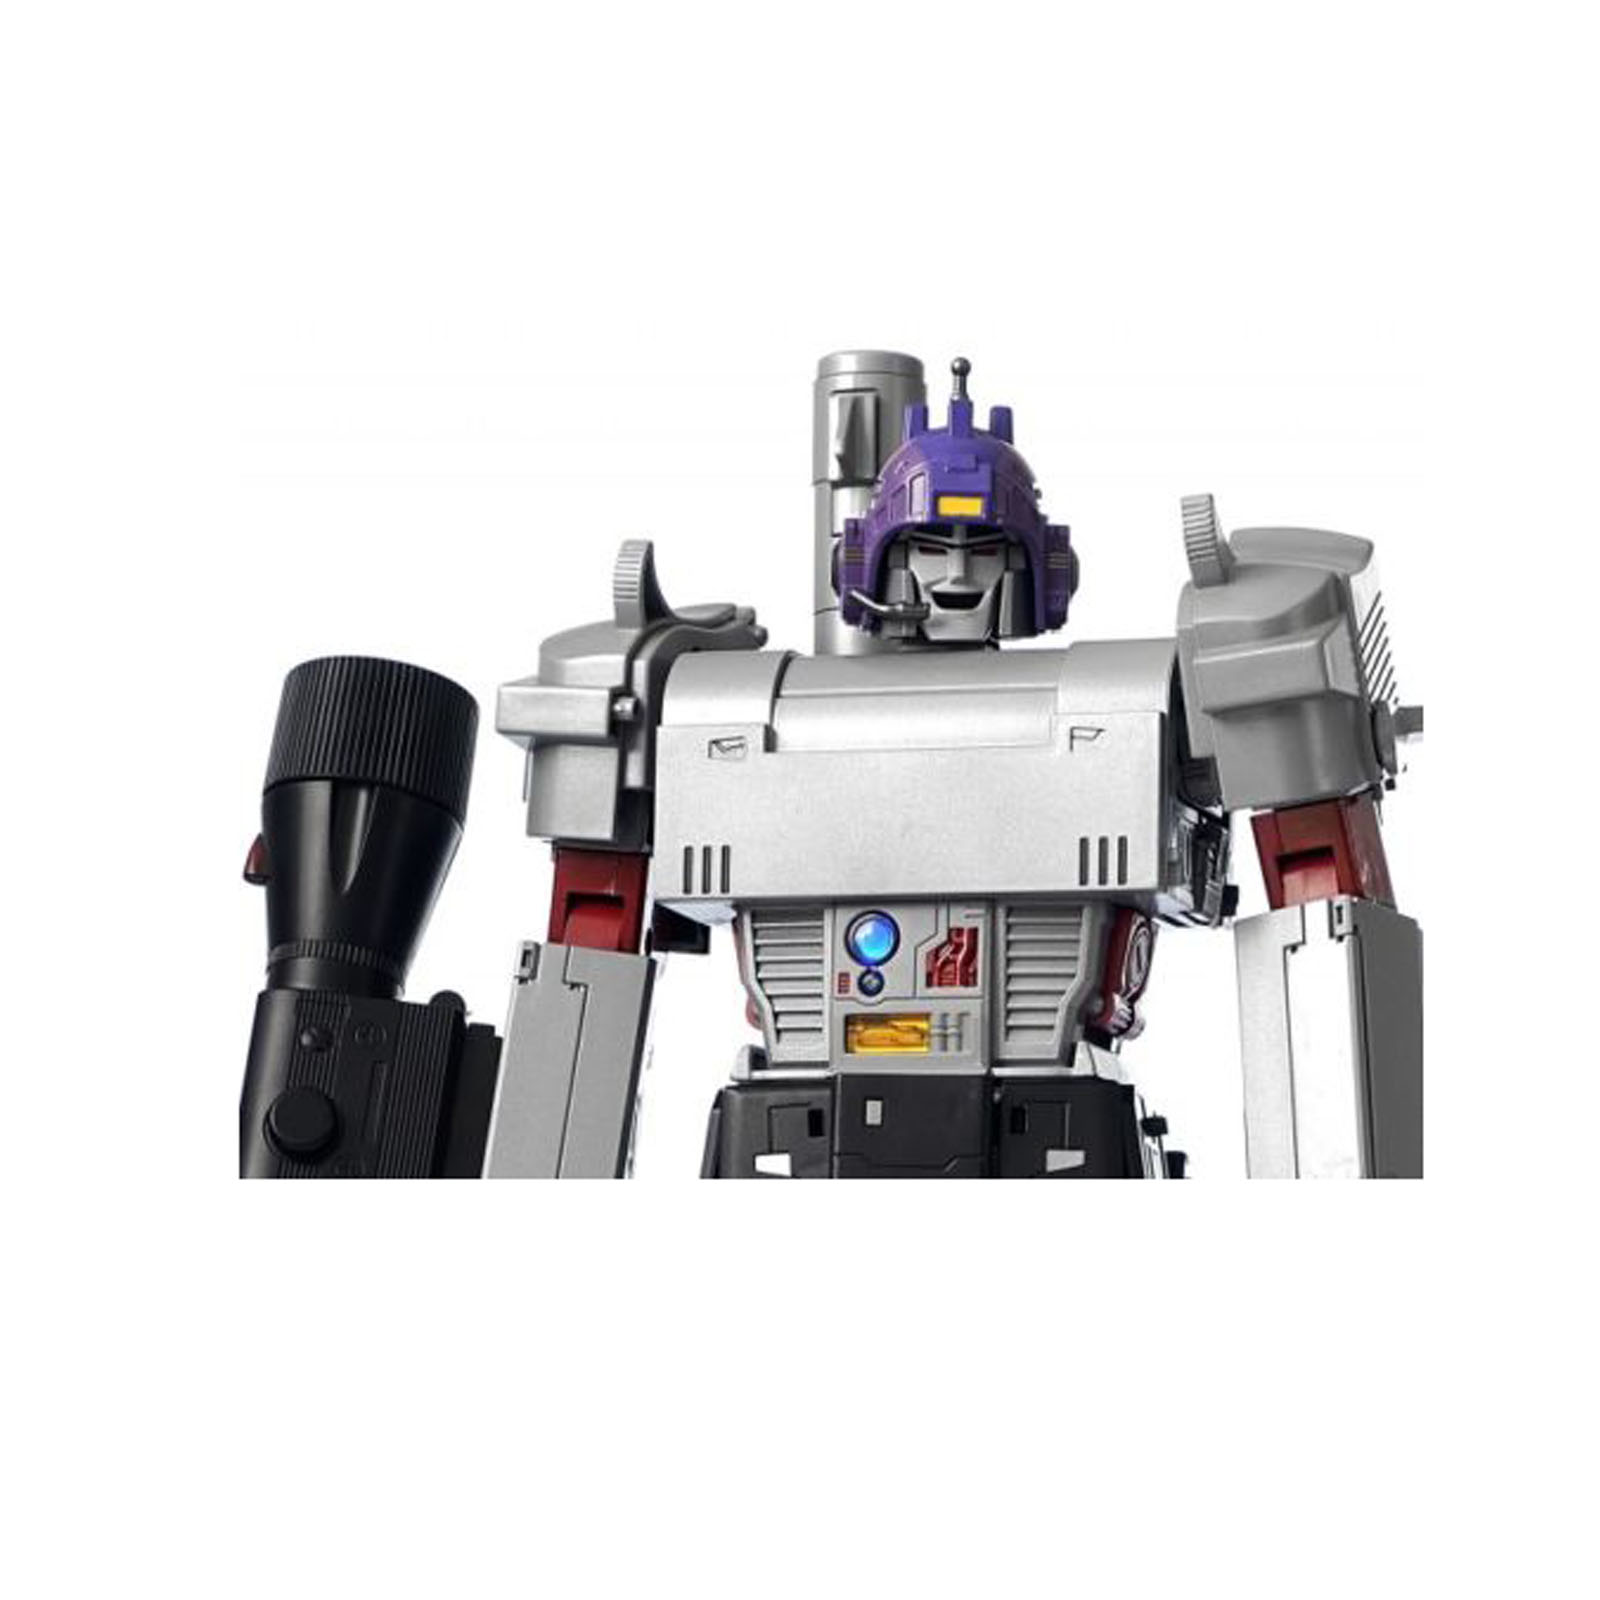 Transformers WJ WEIJIANG NE-01 Megamaster Robot Force Masterpiece Collection New